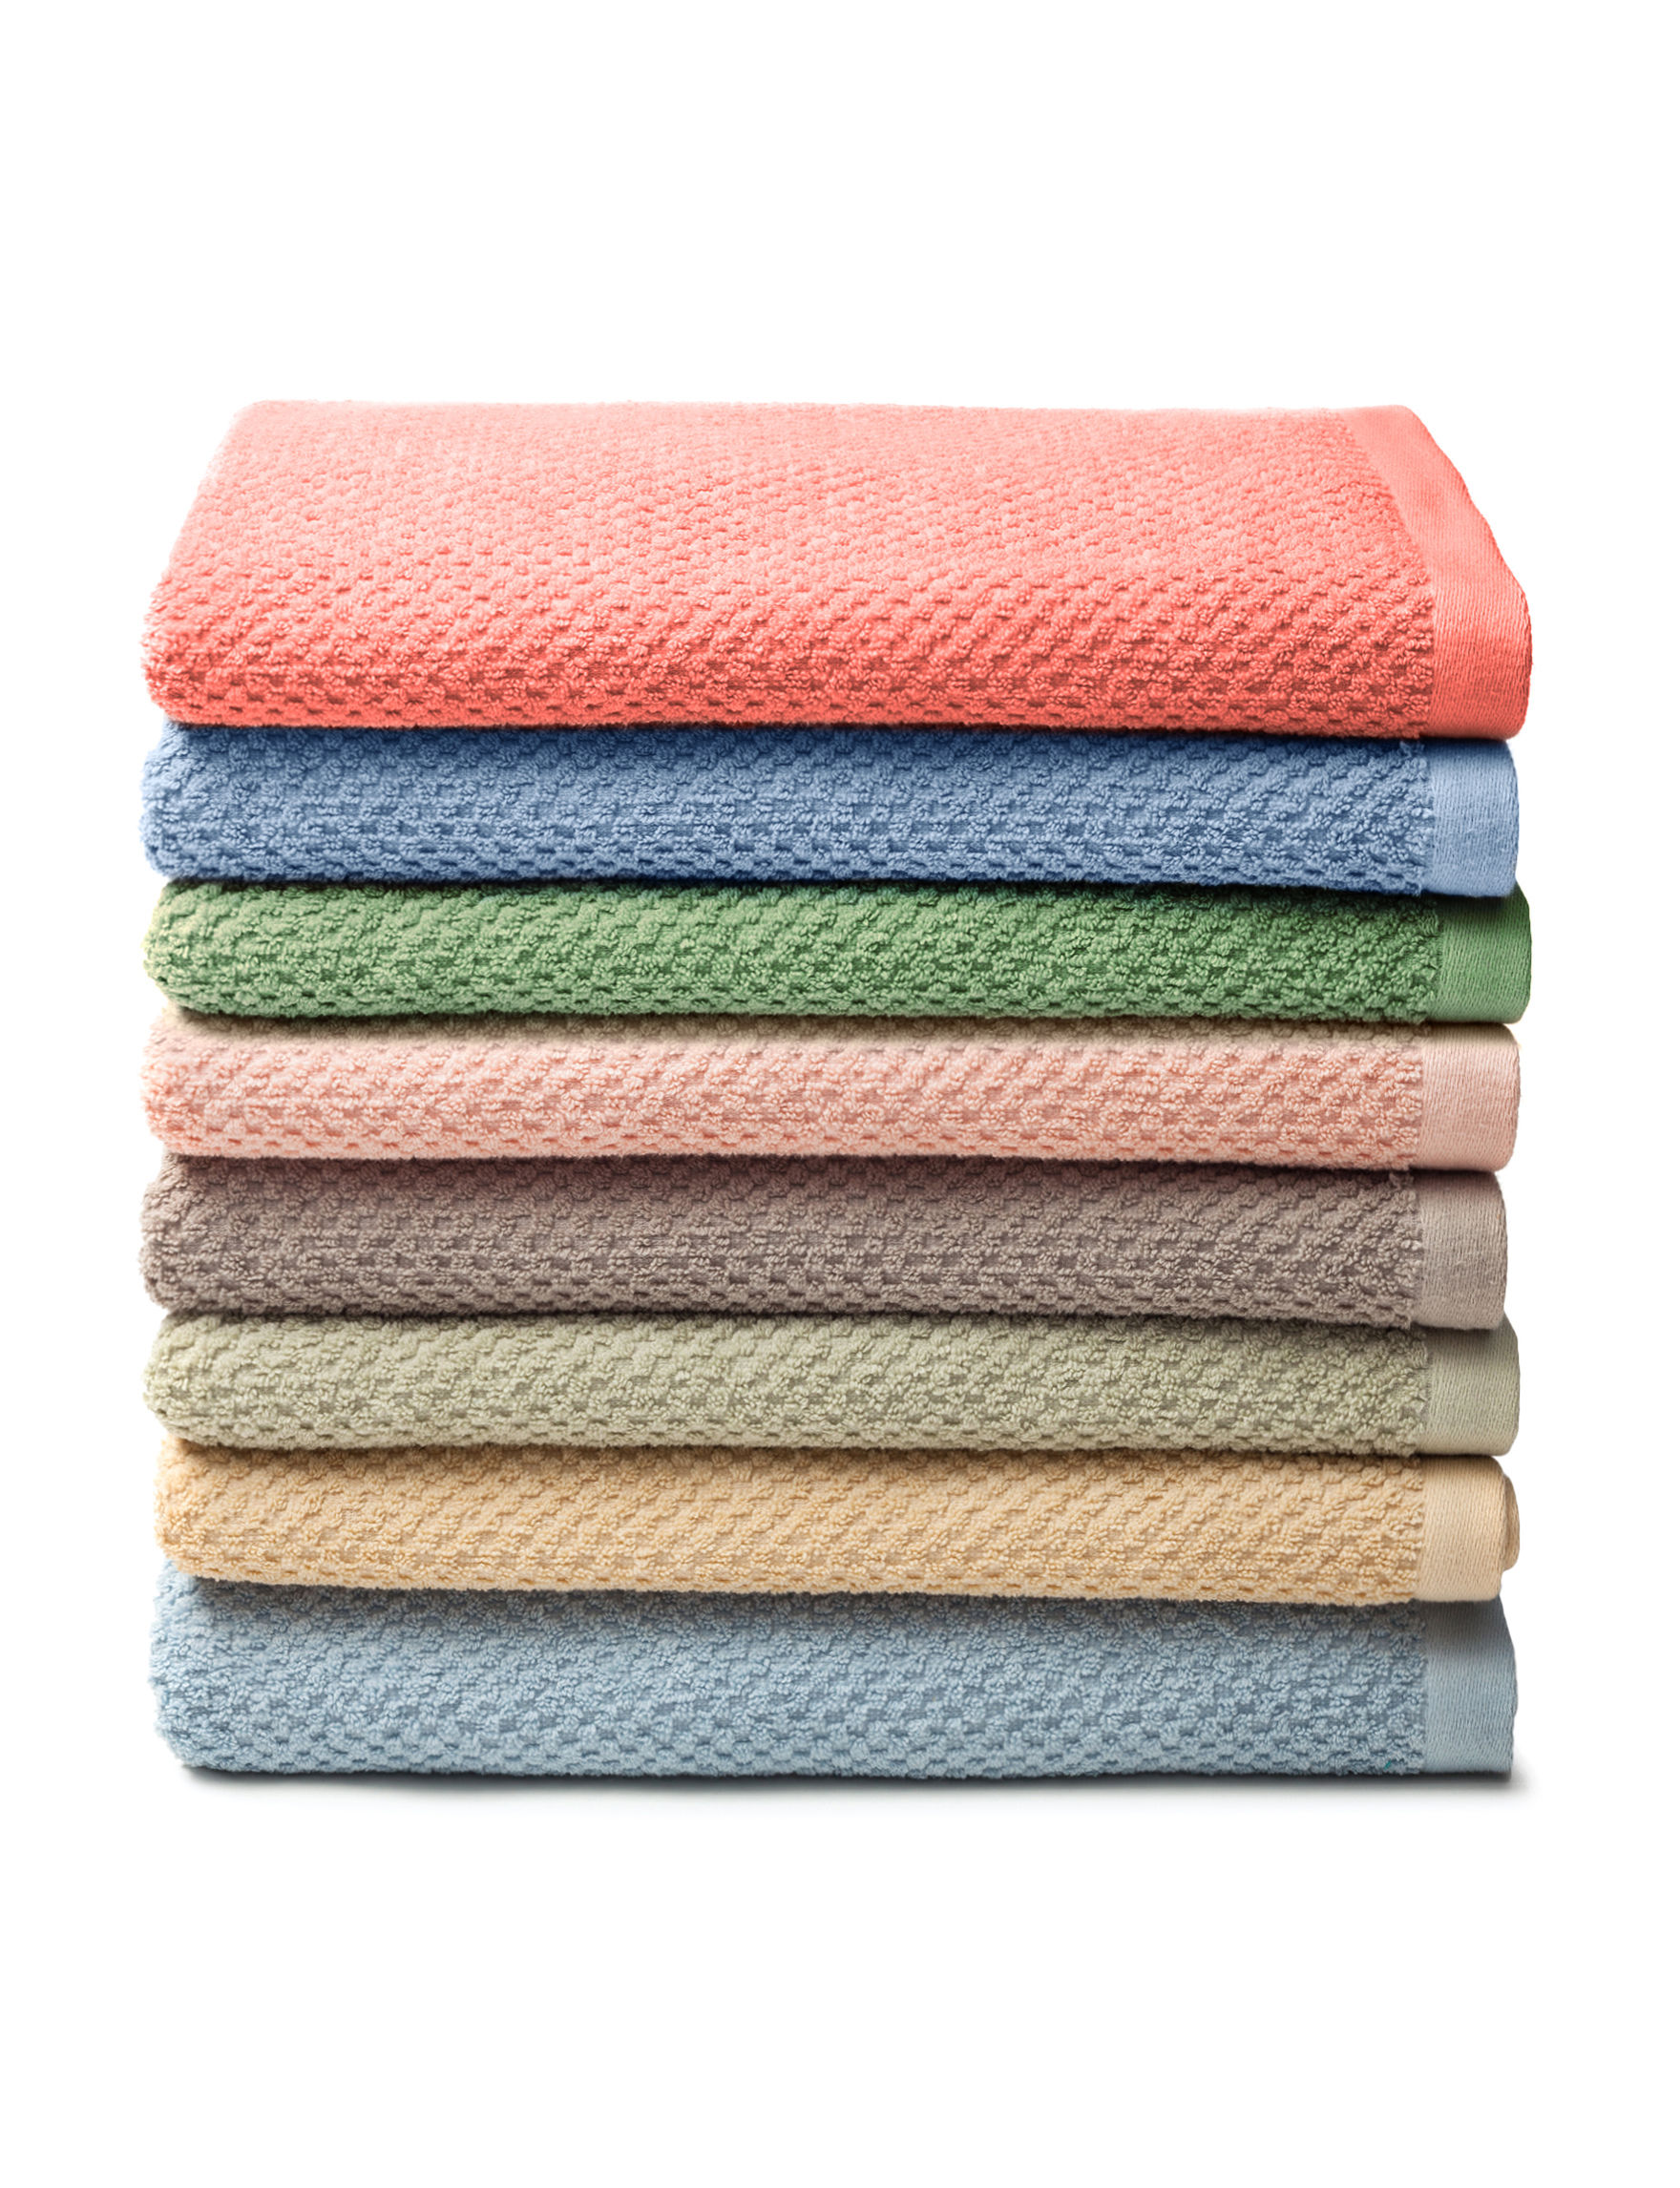 Great Hotels Collection Blush Bath Towels Towels